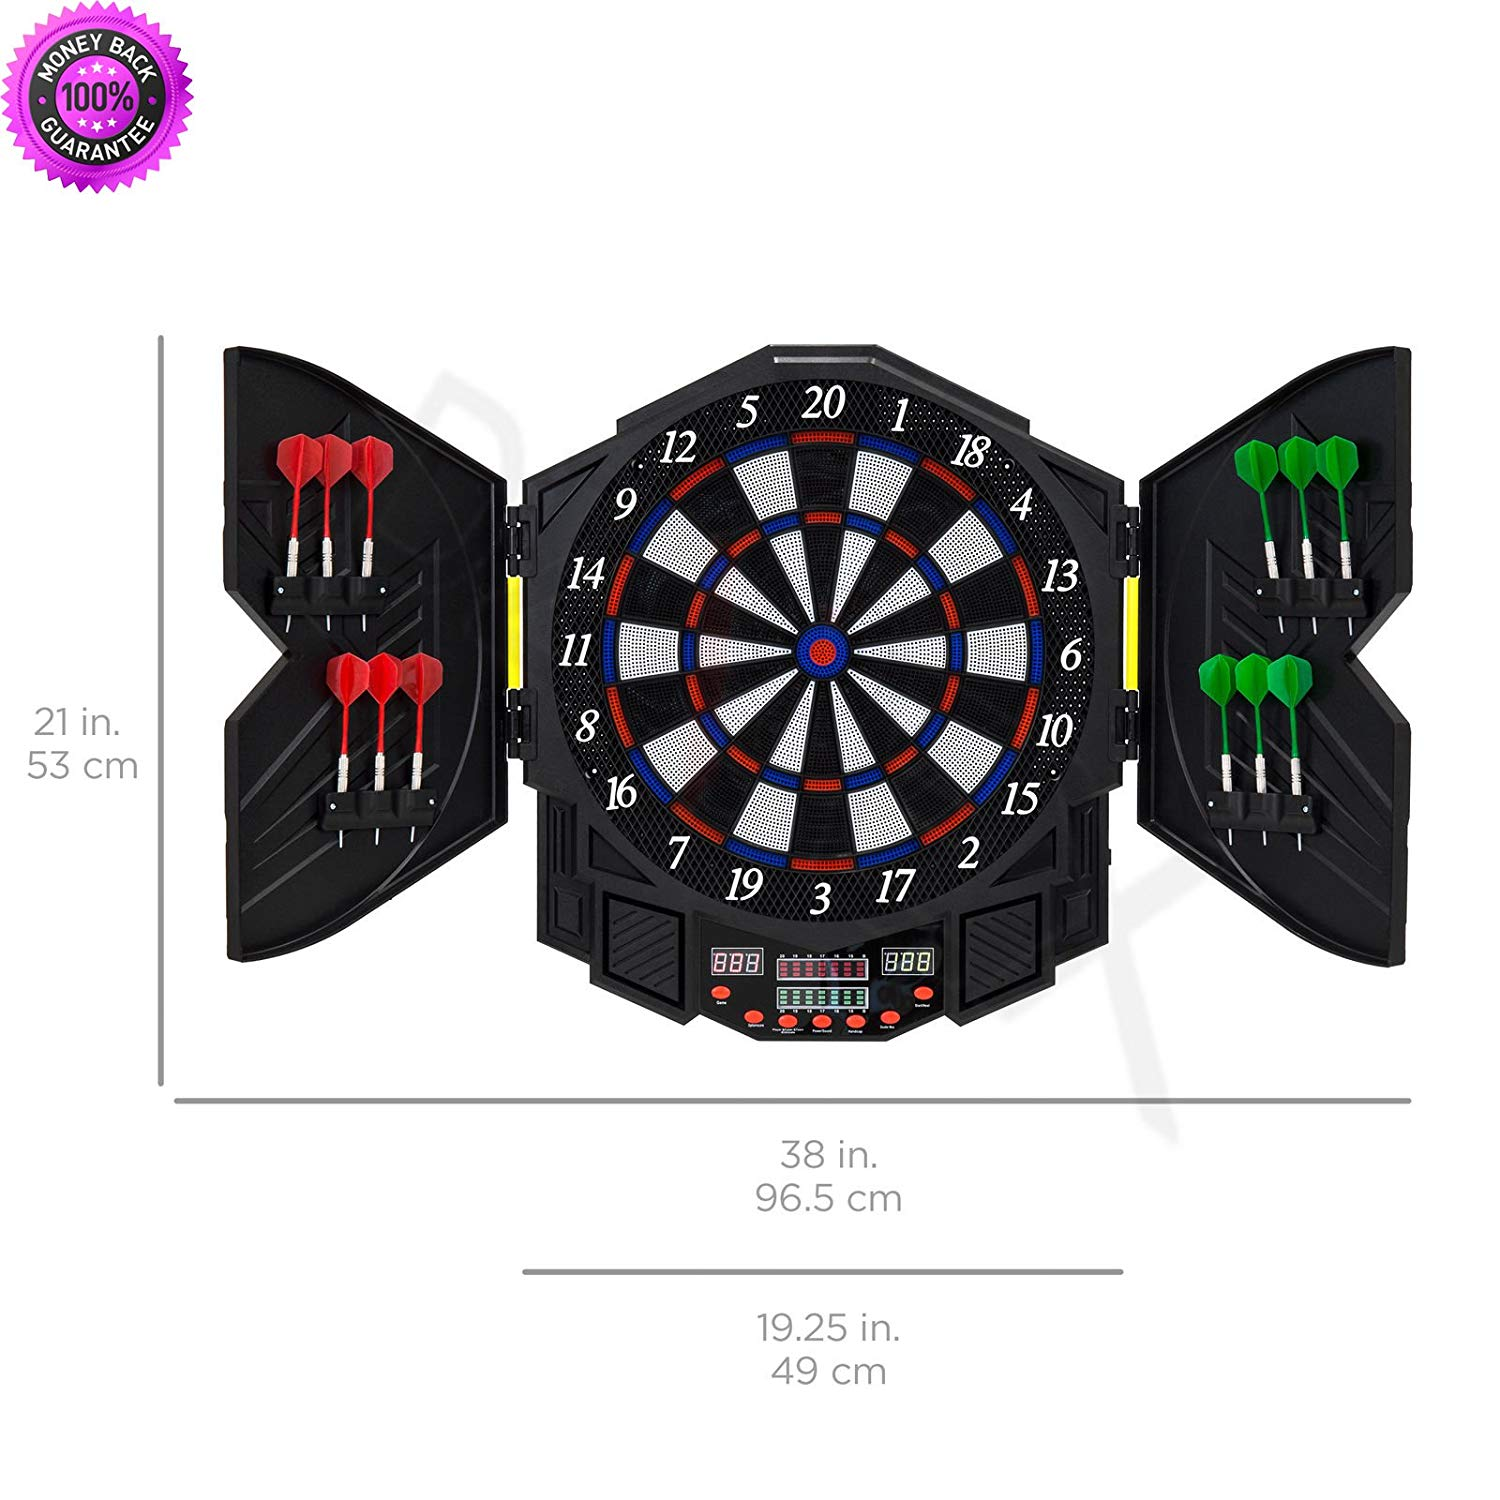 DzVeX Electronic Dartboard Sport Game Set w/Cabinet, 12 Darts, LCD Display And soft tip dart boards electronic dart boards with cabinet american dart boards winmau dart board dart boards